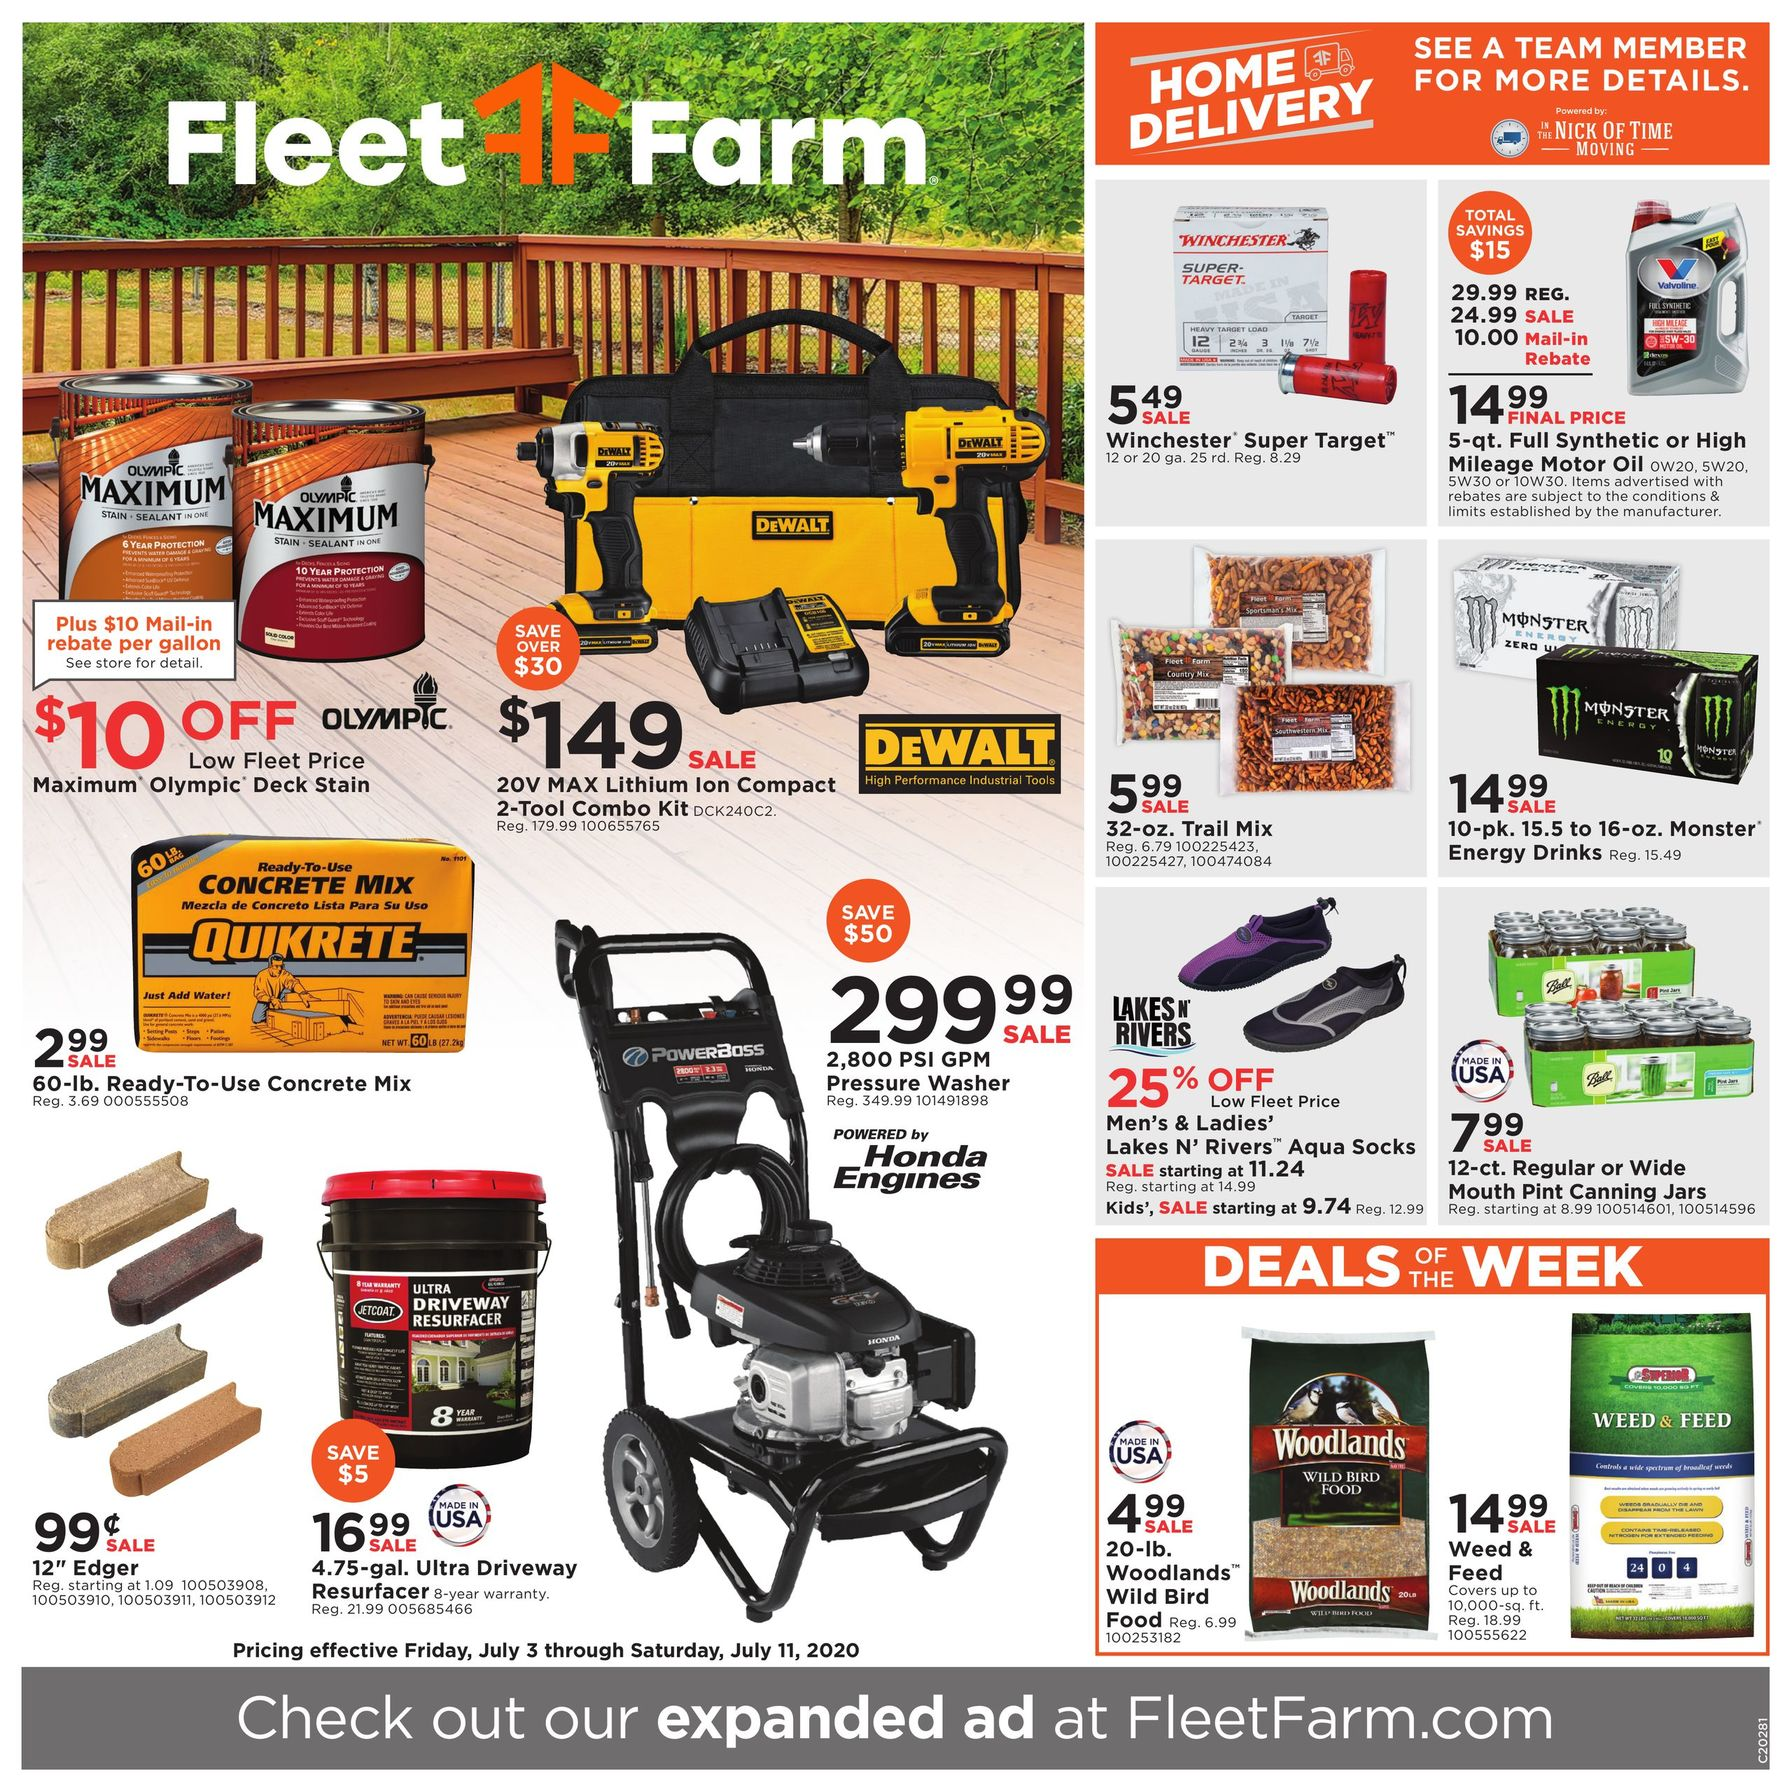 Fleet Farm Weekly Ad July 3 - July 11, 2020. Home Delivery!